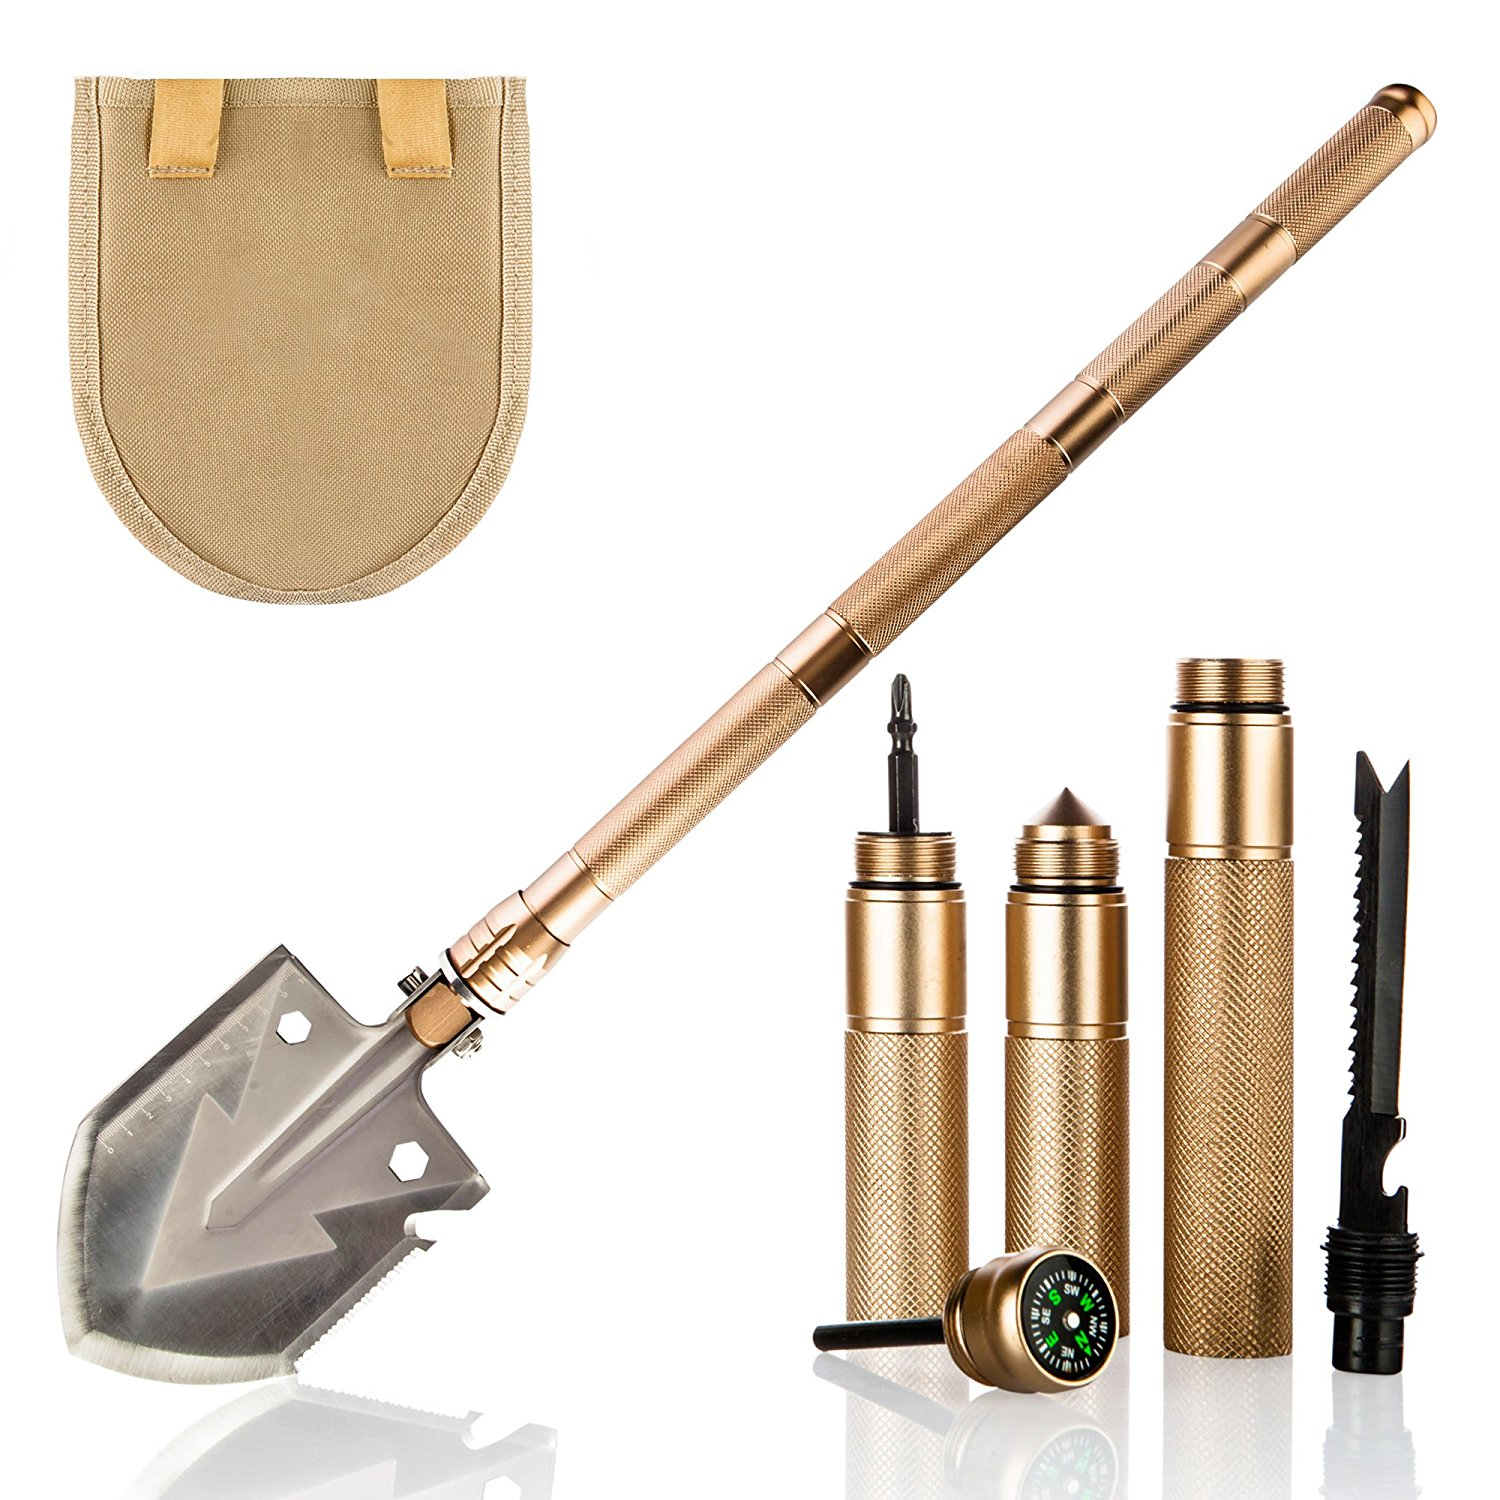 Camping Military Folding Shovel Pickax Entrenching Tool Spade Gardening Snow Mud Digger Car Emergency Multi Tool w/ Tactical Bag цены